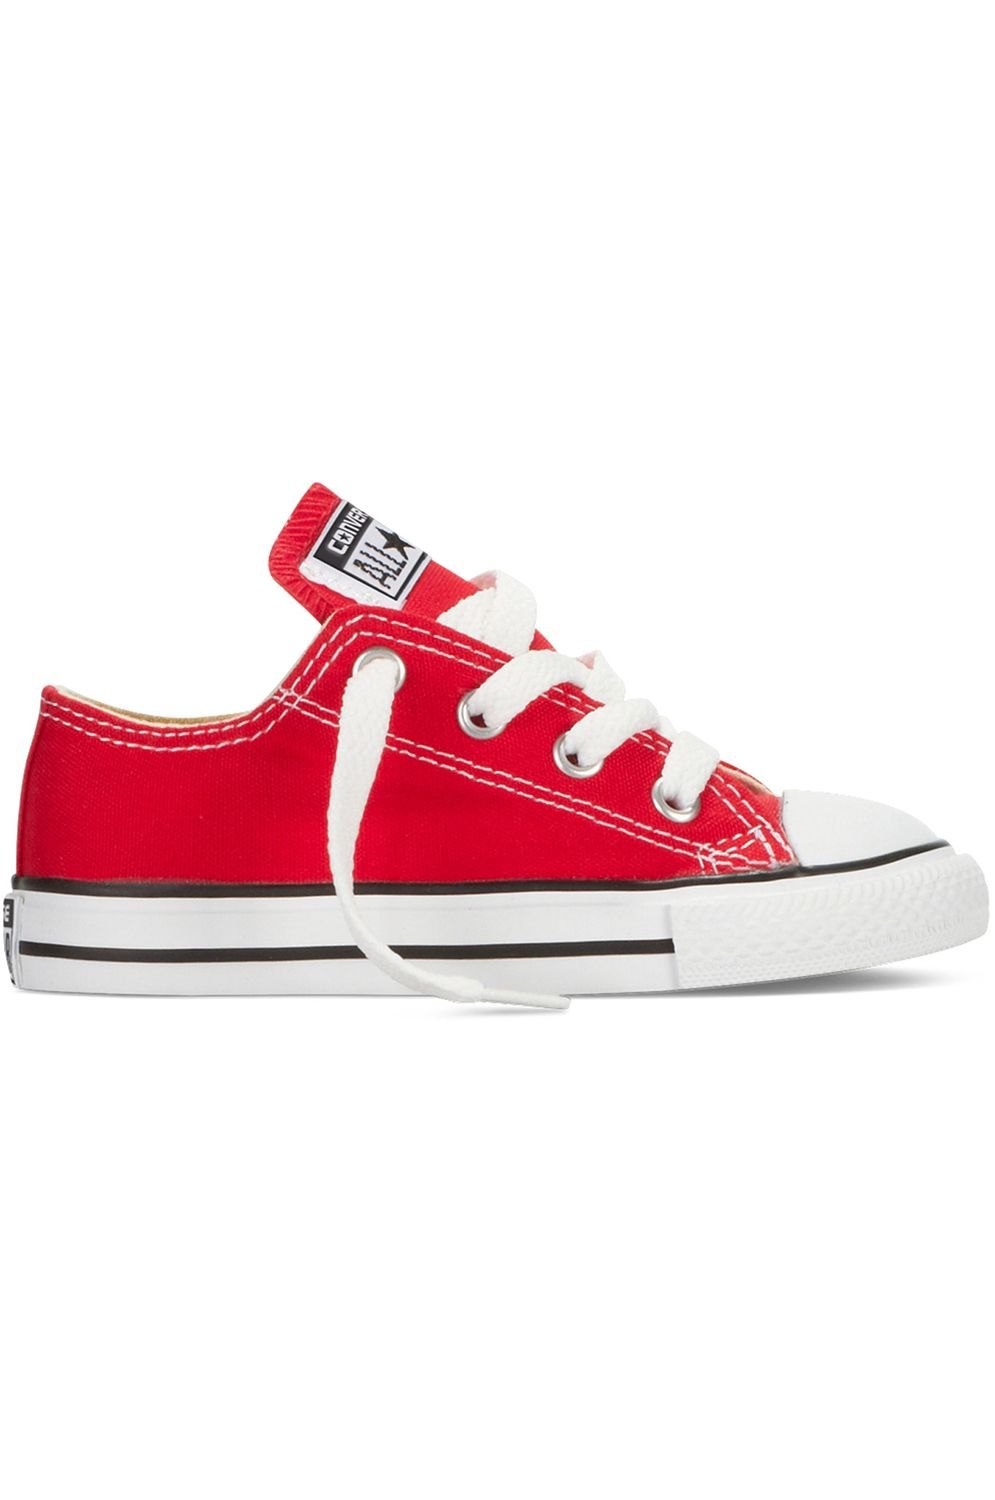 Tenis Converse CHUCK TAYLOR ALL STAR OX Red